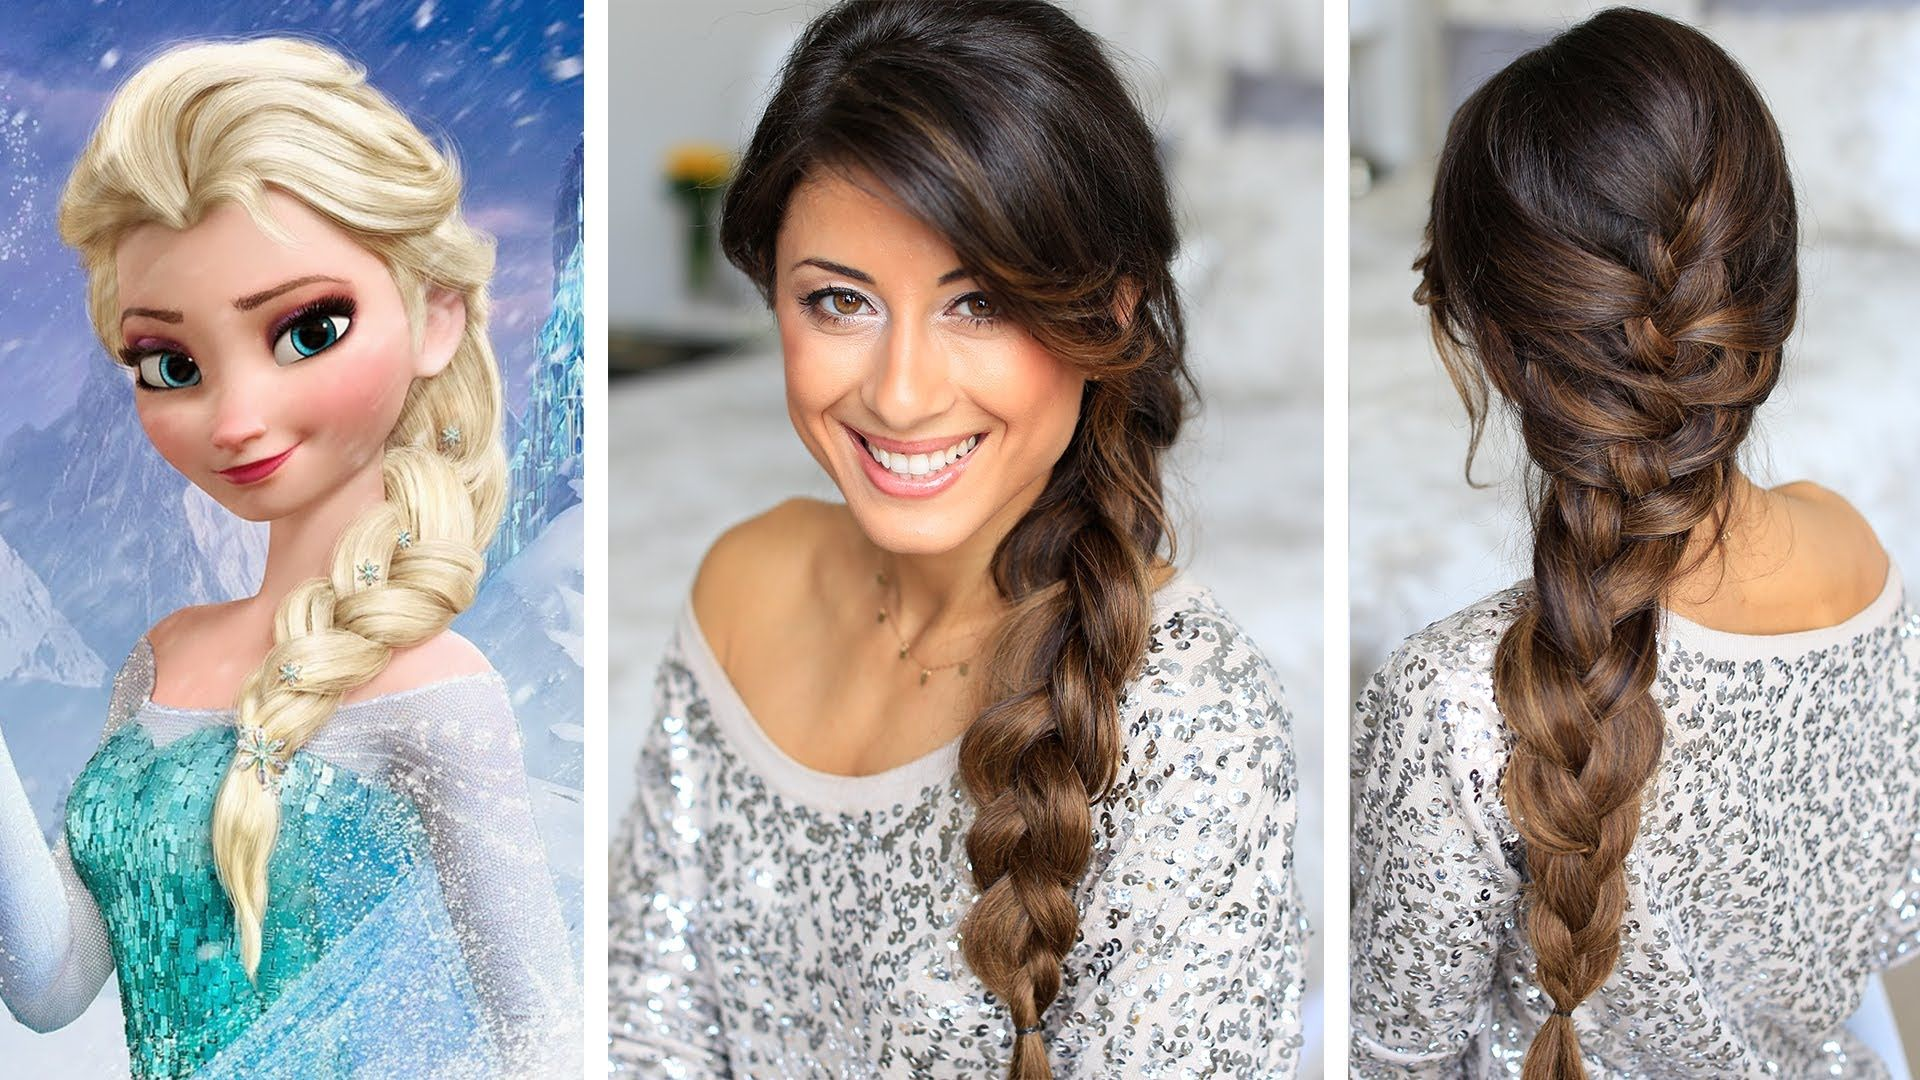 Frozen Elsa s Braid Hair Tutorial